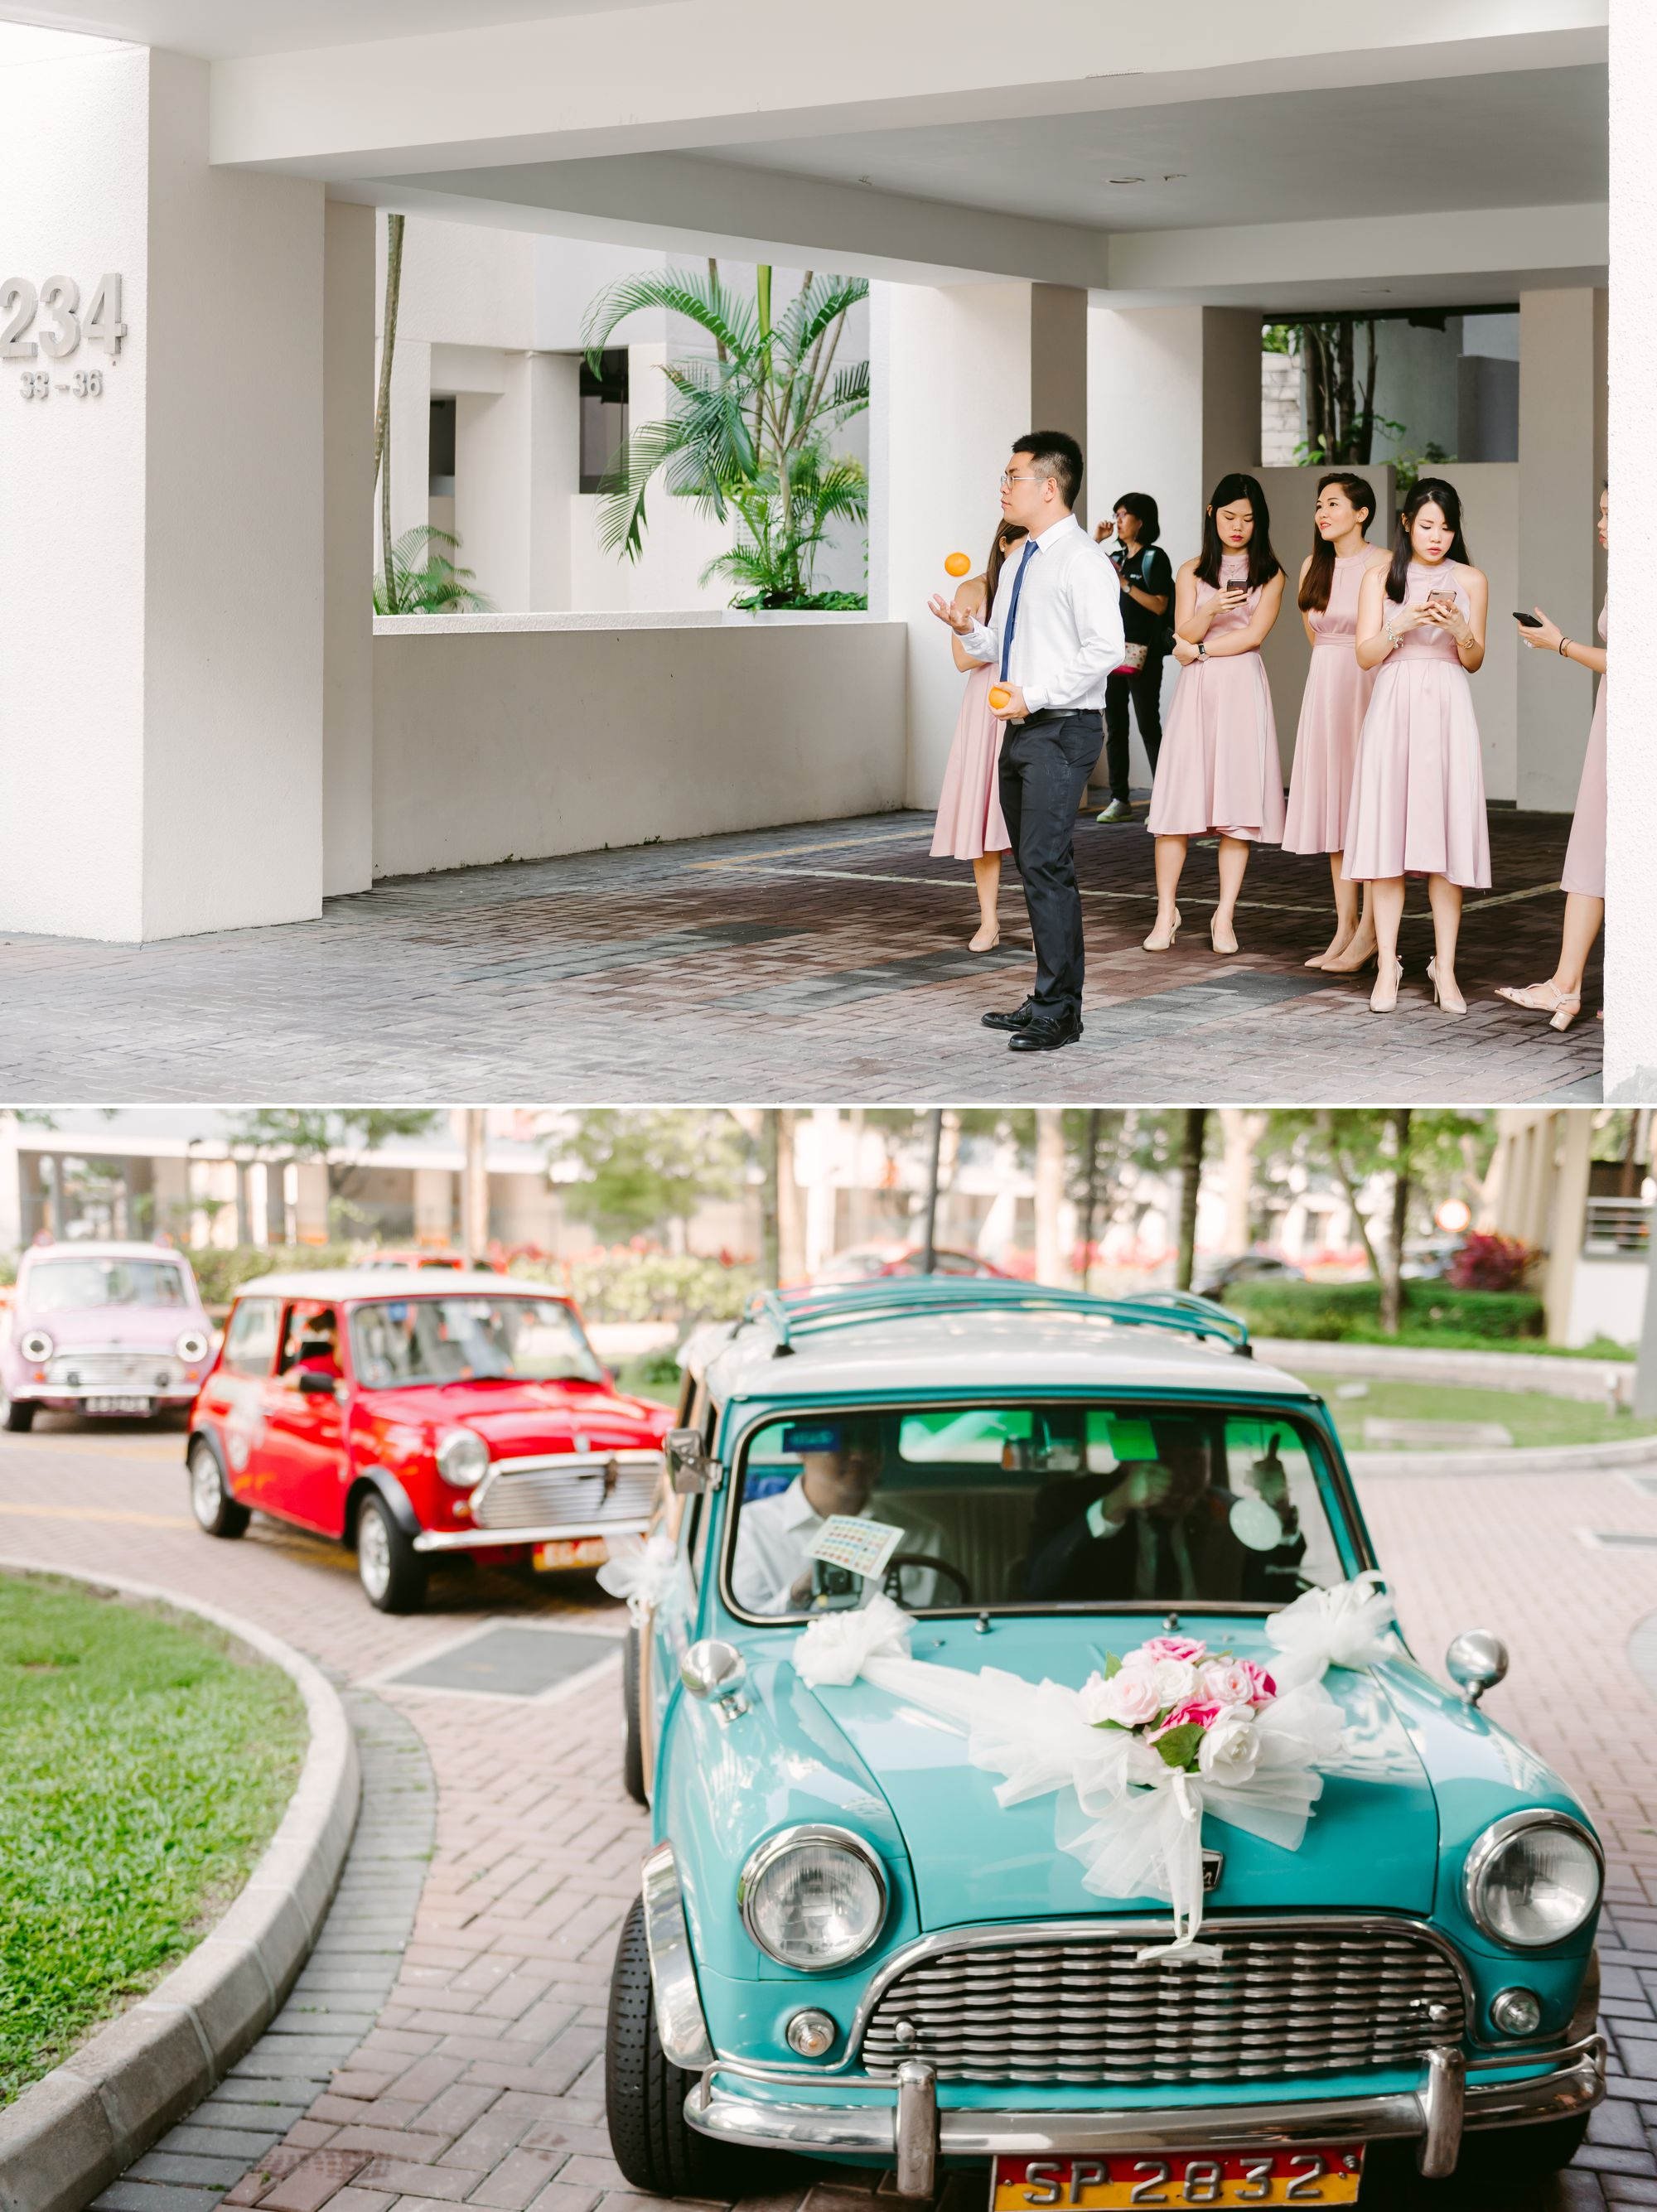 conrad_wedding_Singapore_ 8.jpg